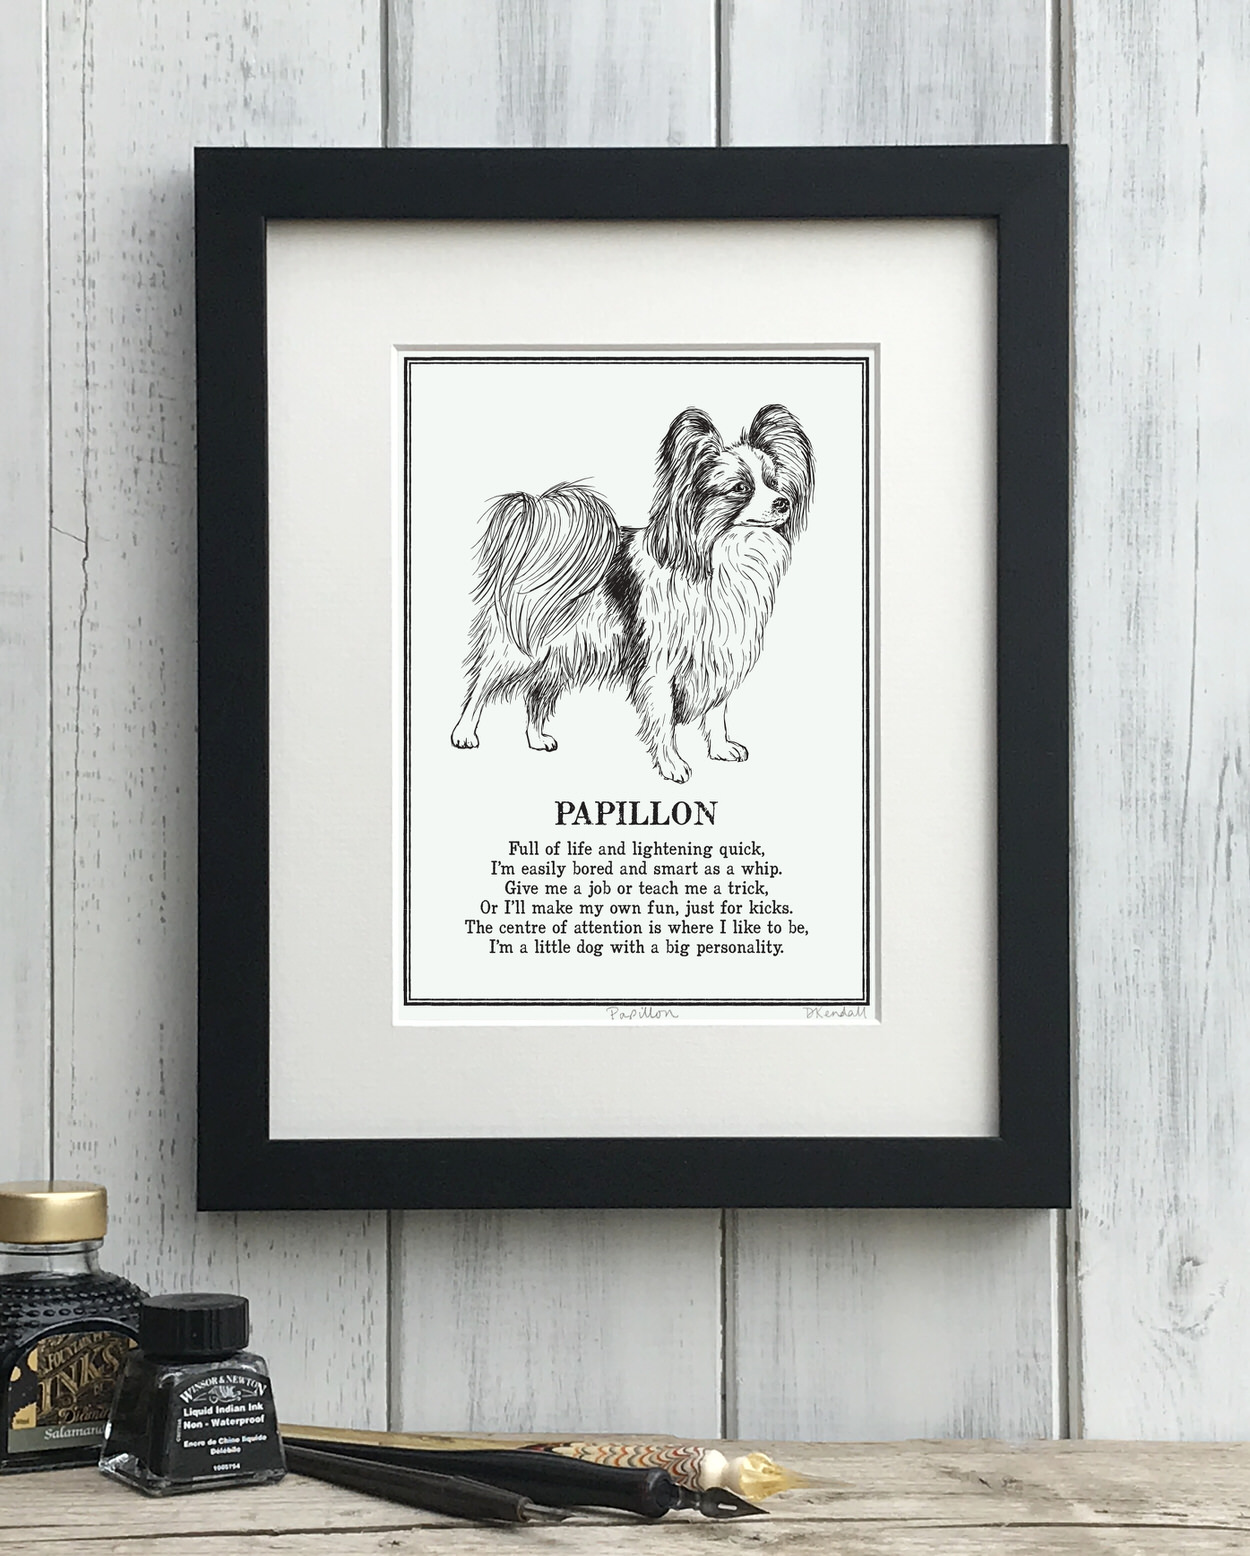 Papillon print illustrated poem by The Enlightened Hound